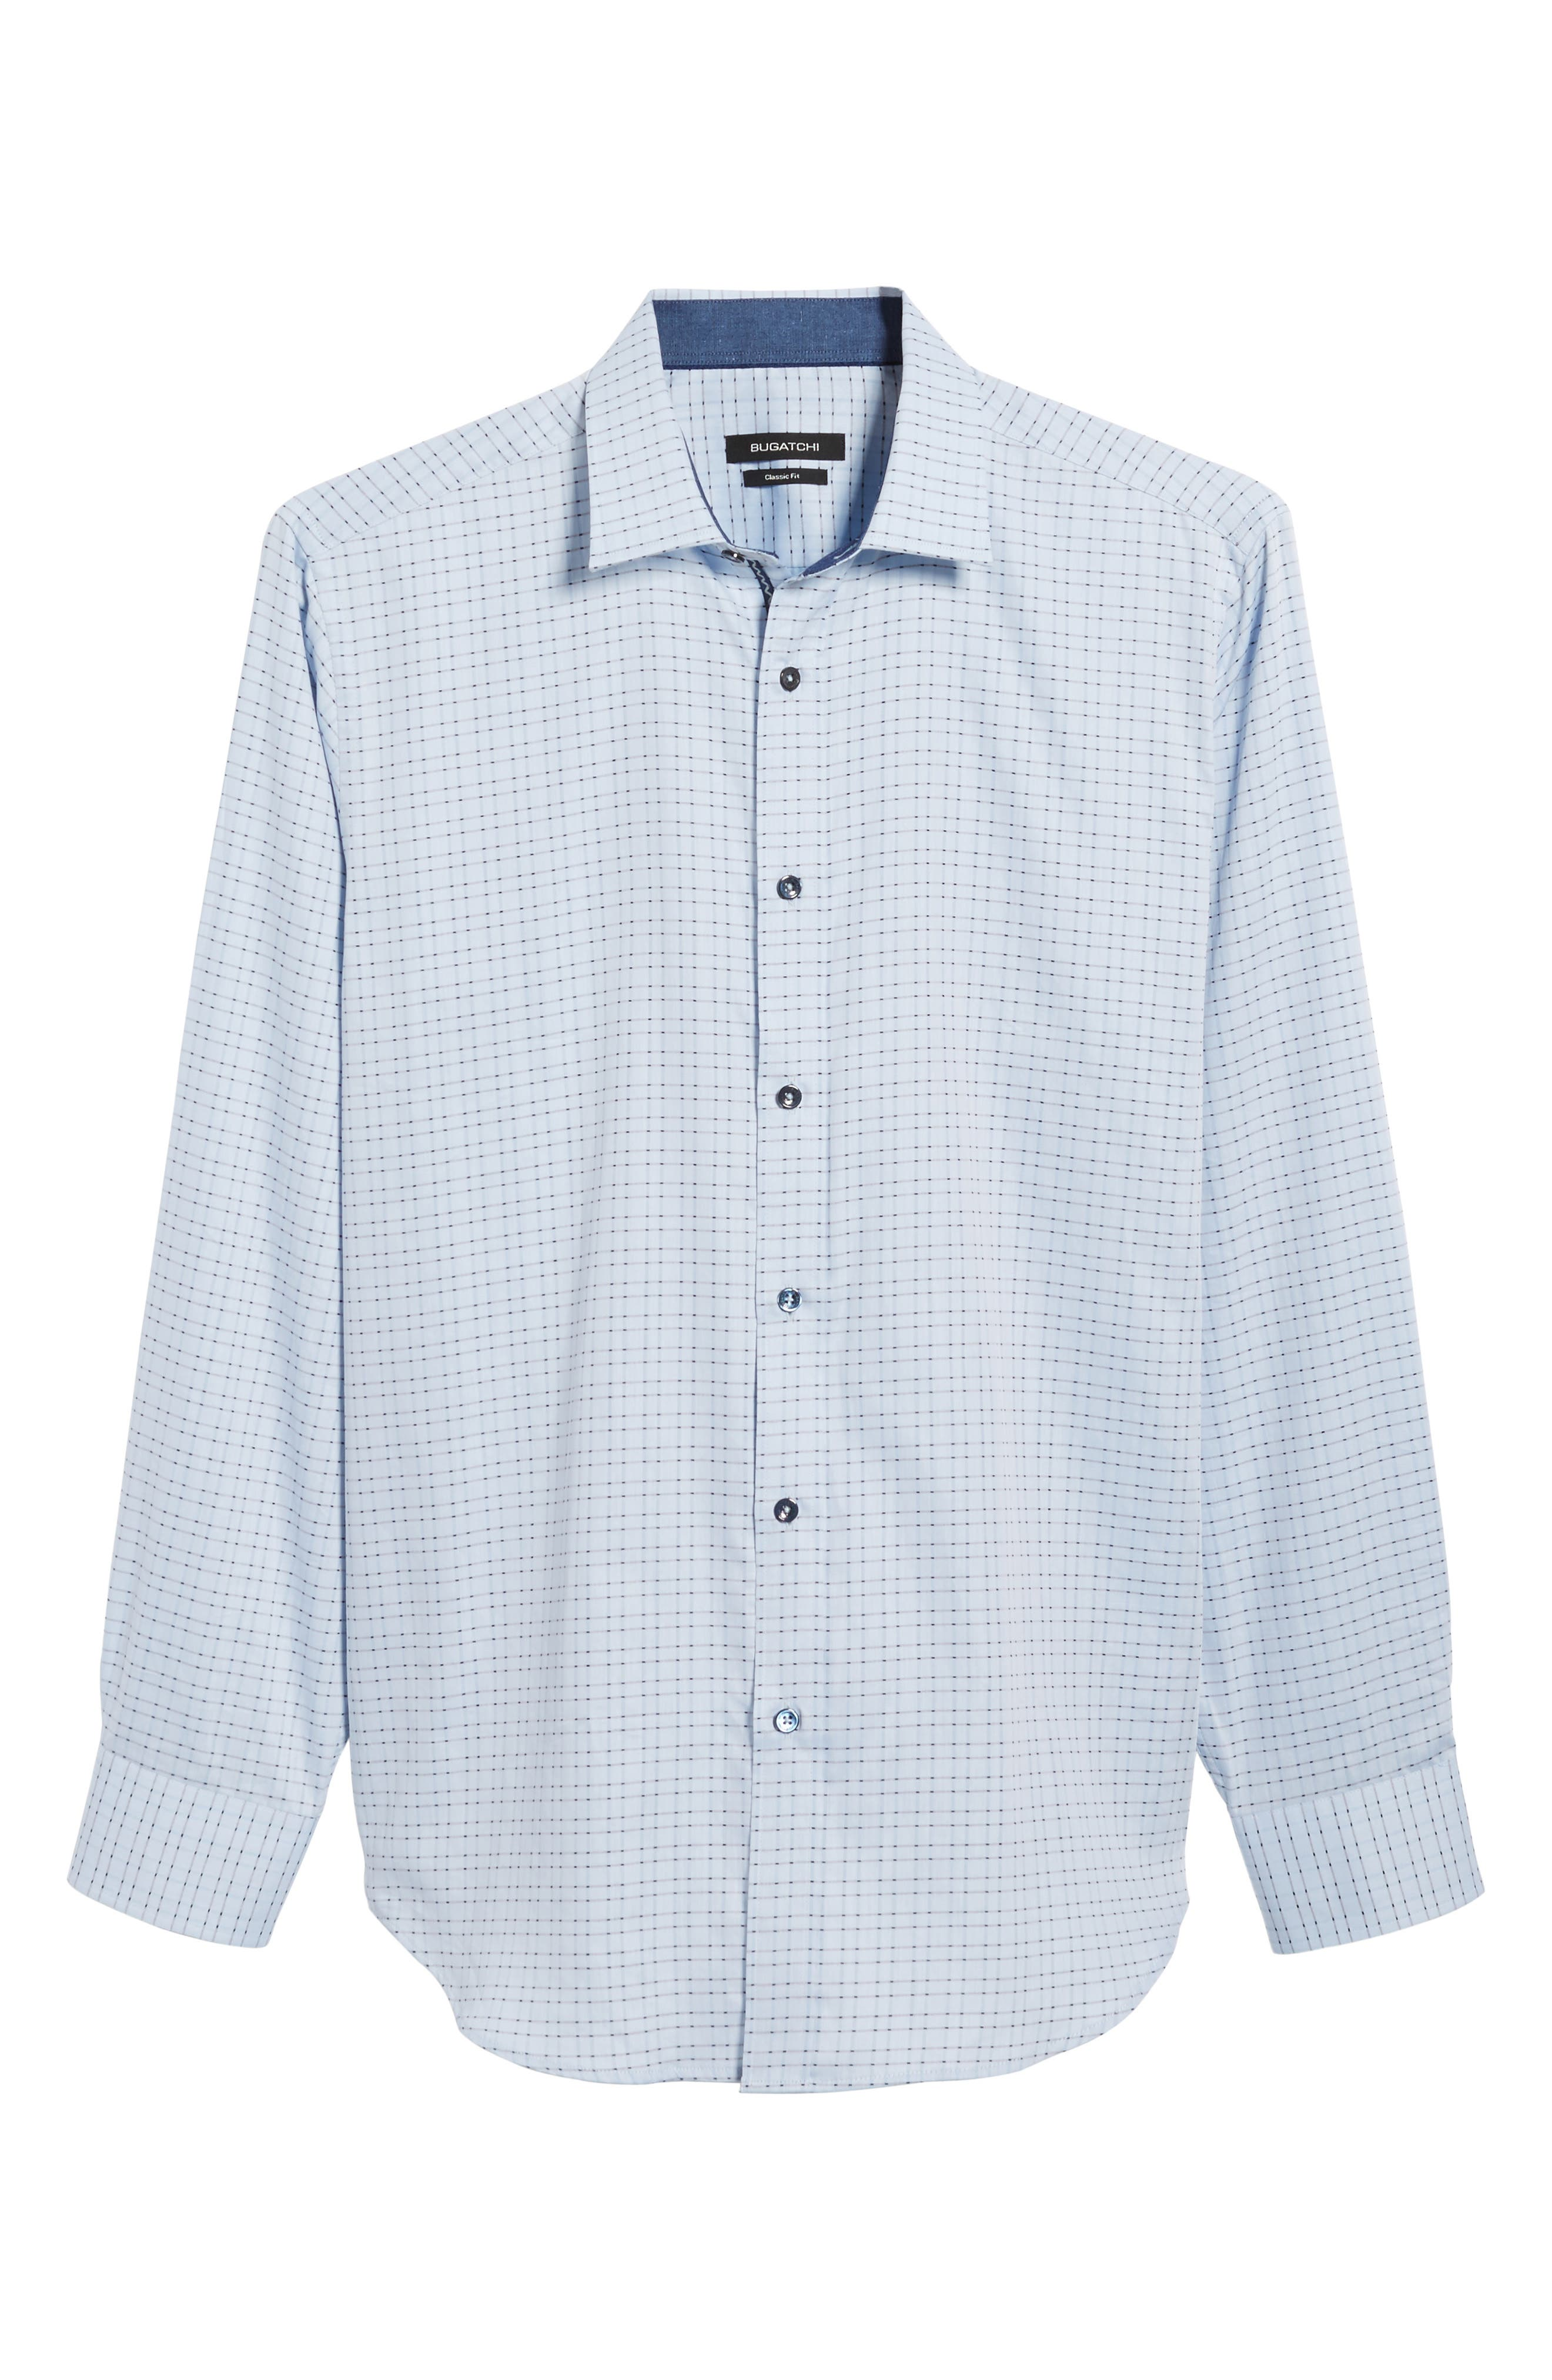 Classic Fit Check Sport Shirt,                             Alternate thumbnail 6, color,                             459